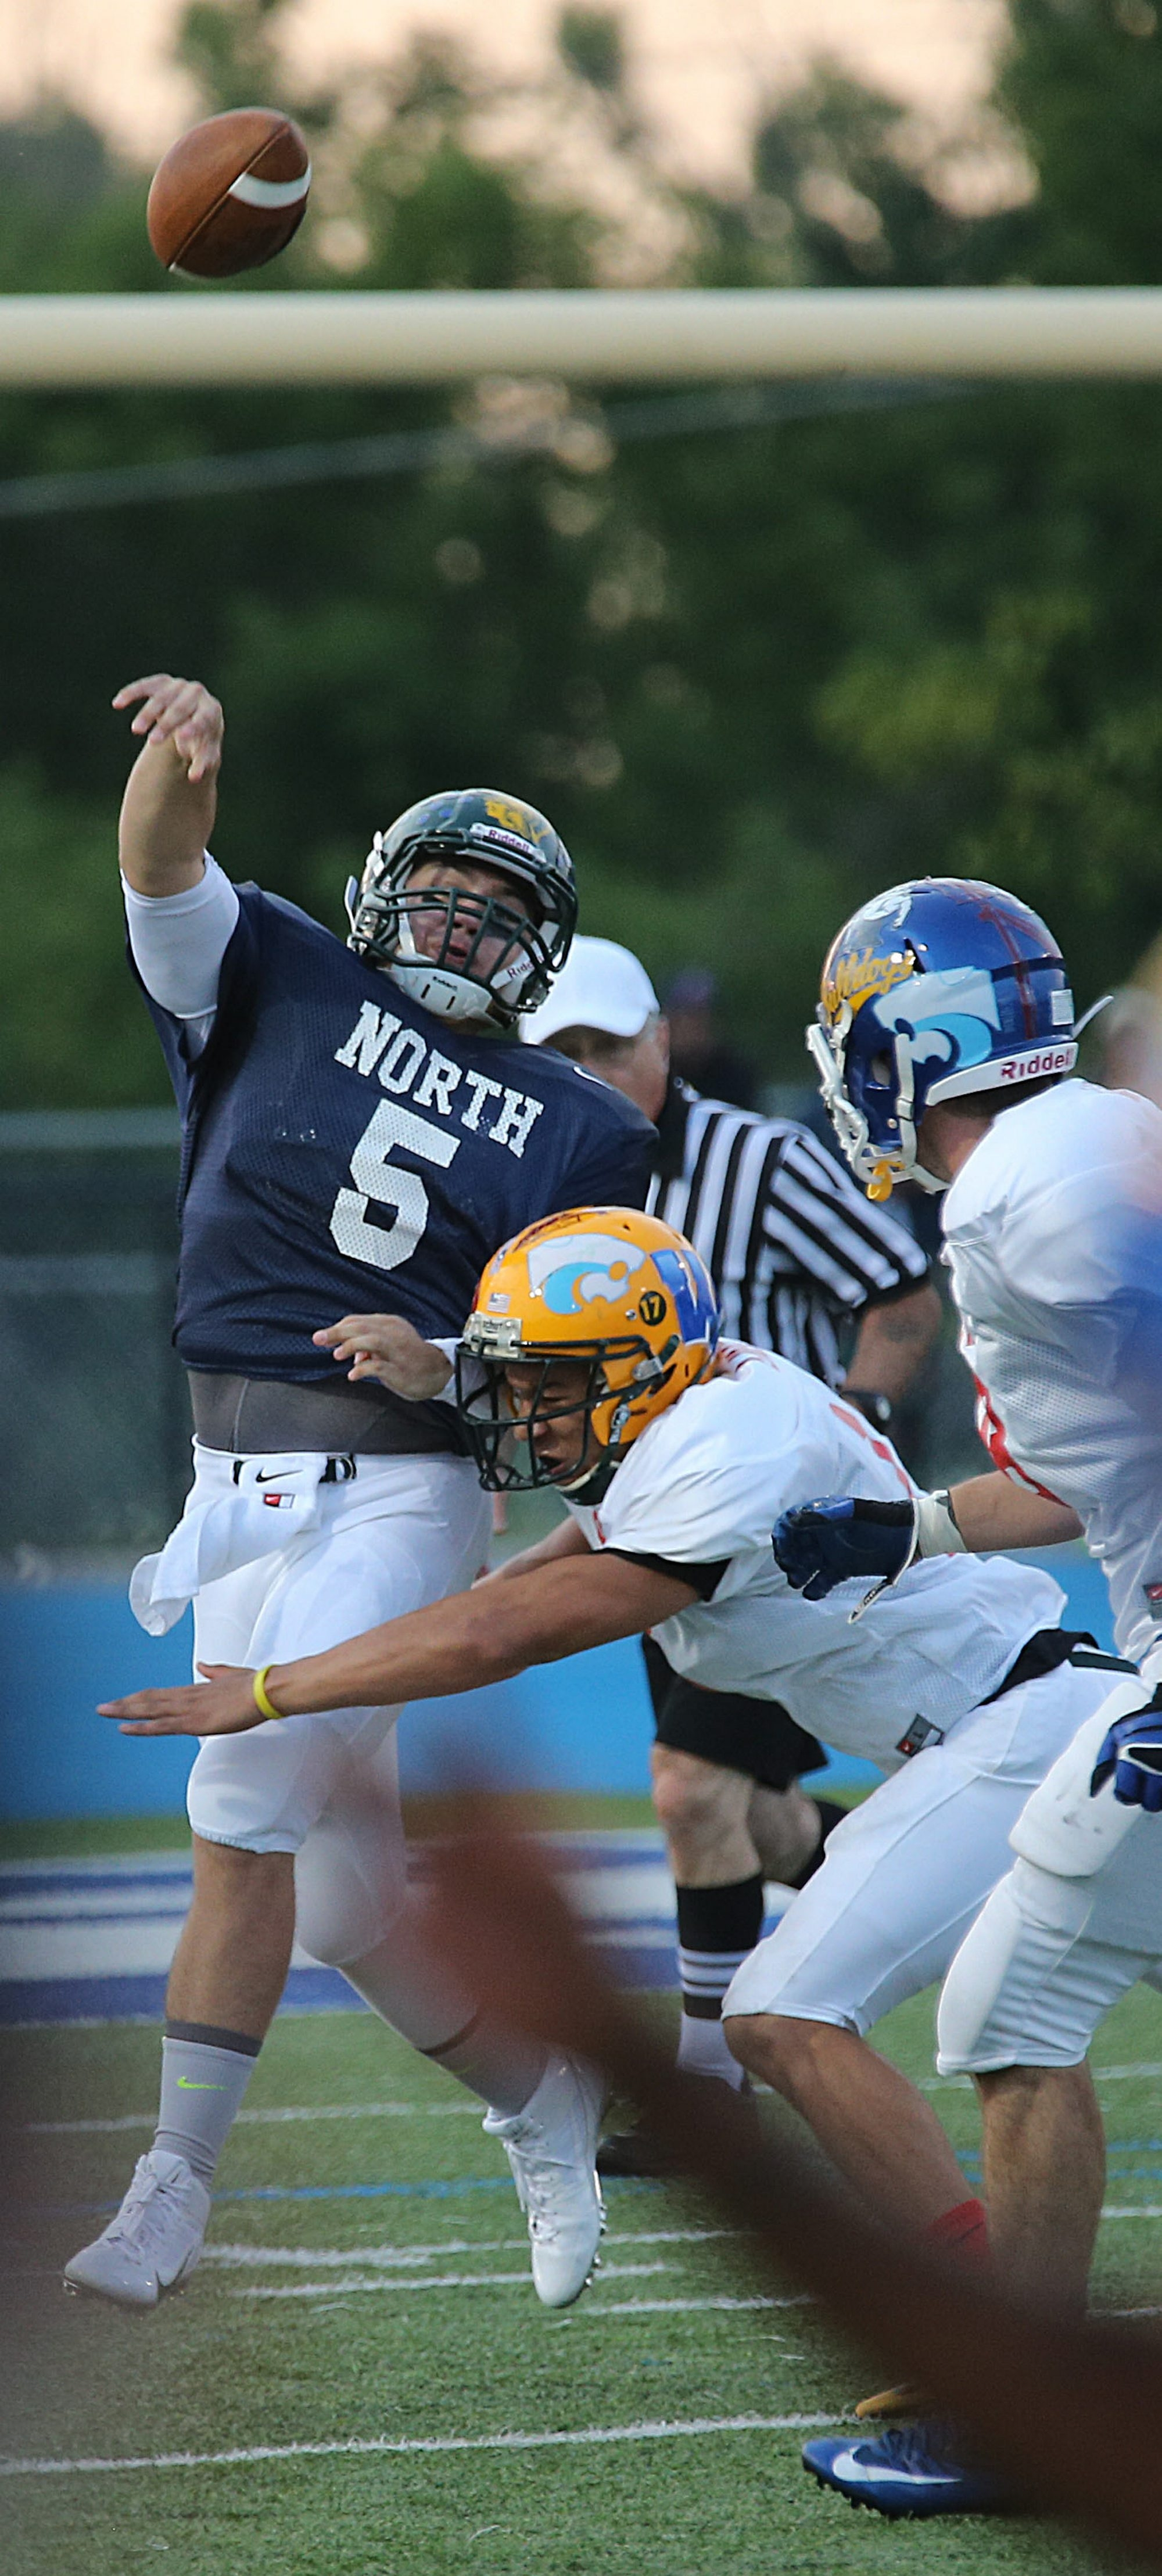 North All-Star #5, Ryan Majewski, left, throws just as he is hit by South All-Star, #17, Devin Lindner, at Depew High School, Wednesday, July 30, 2014.{Photo by Charles Lewis/Buffalo News}